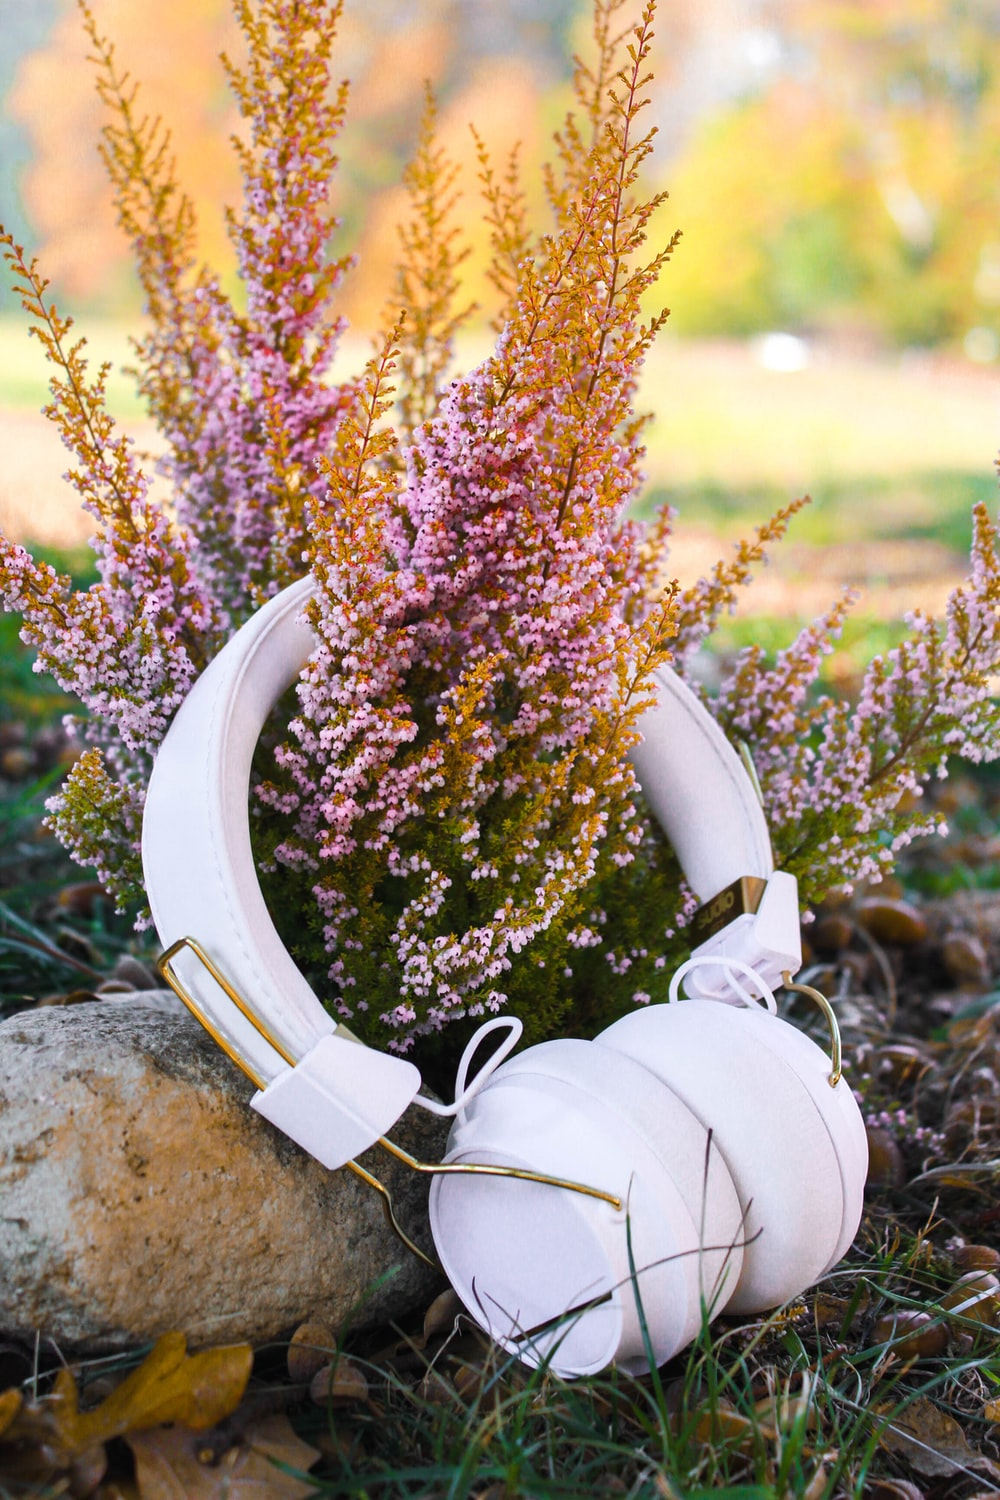 white cordless headphones near plant during daytime